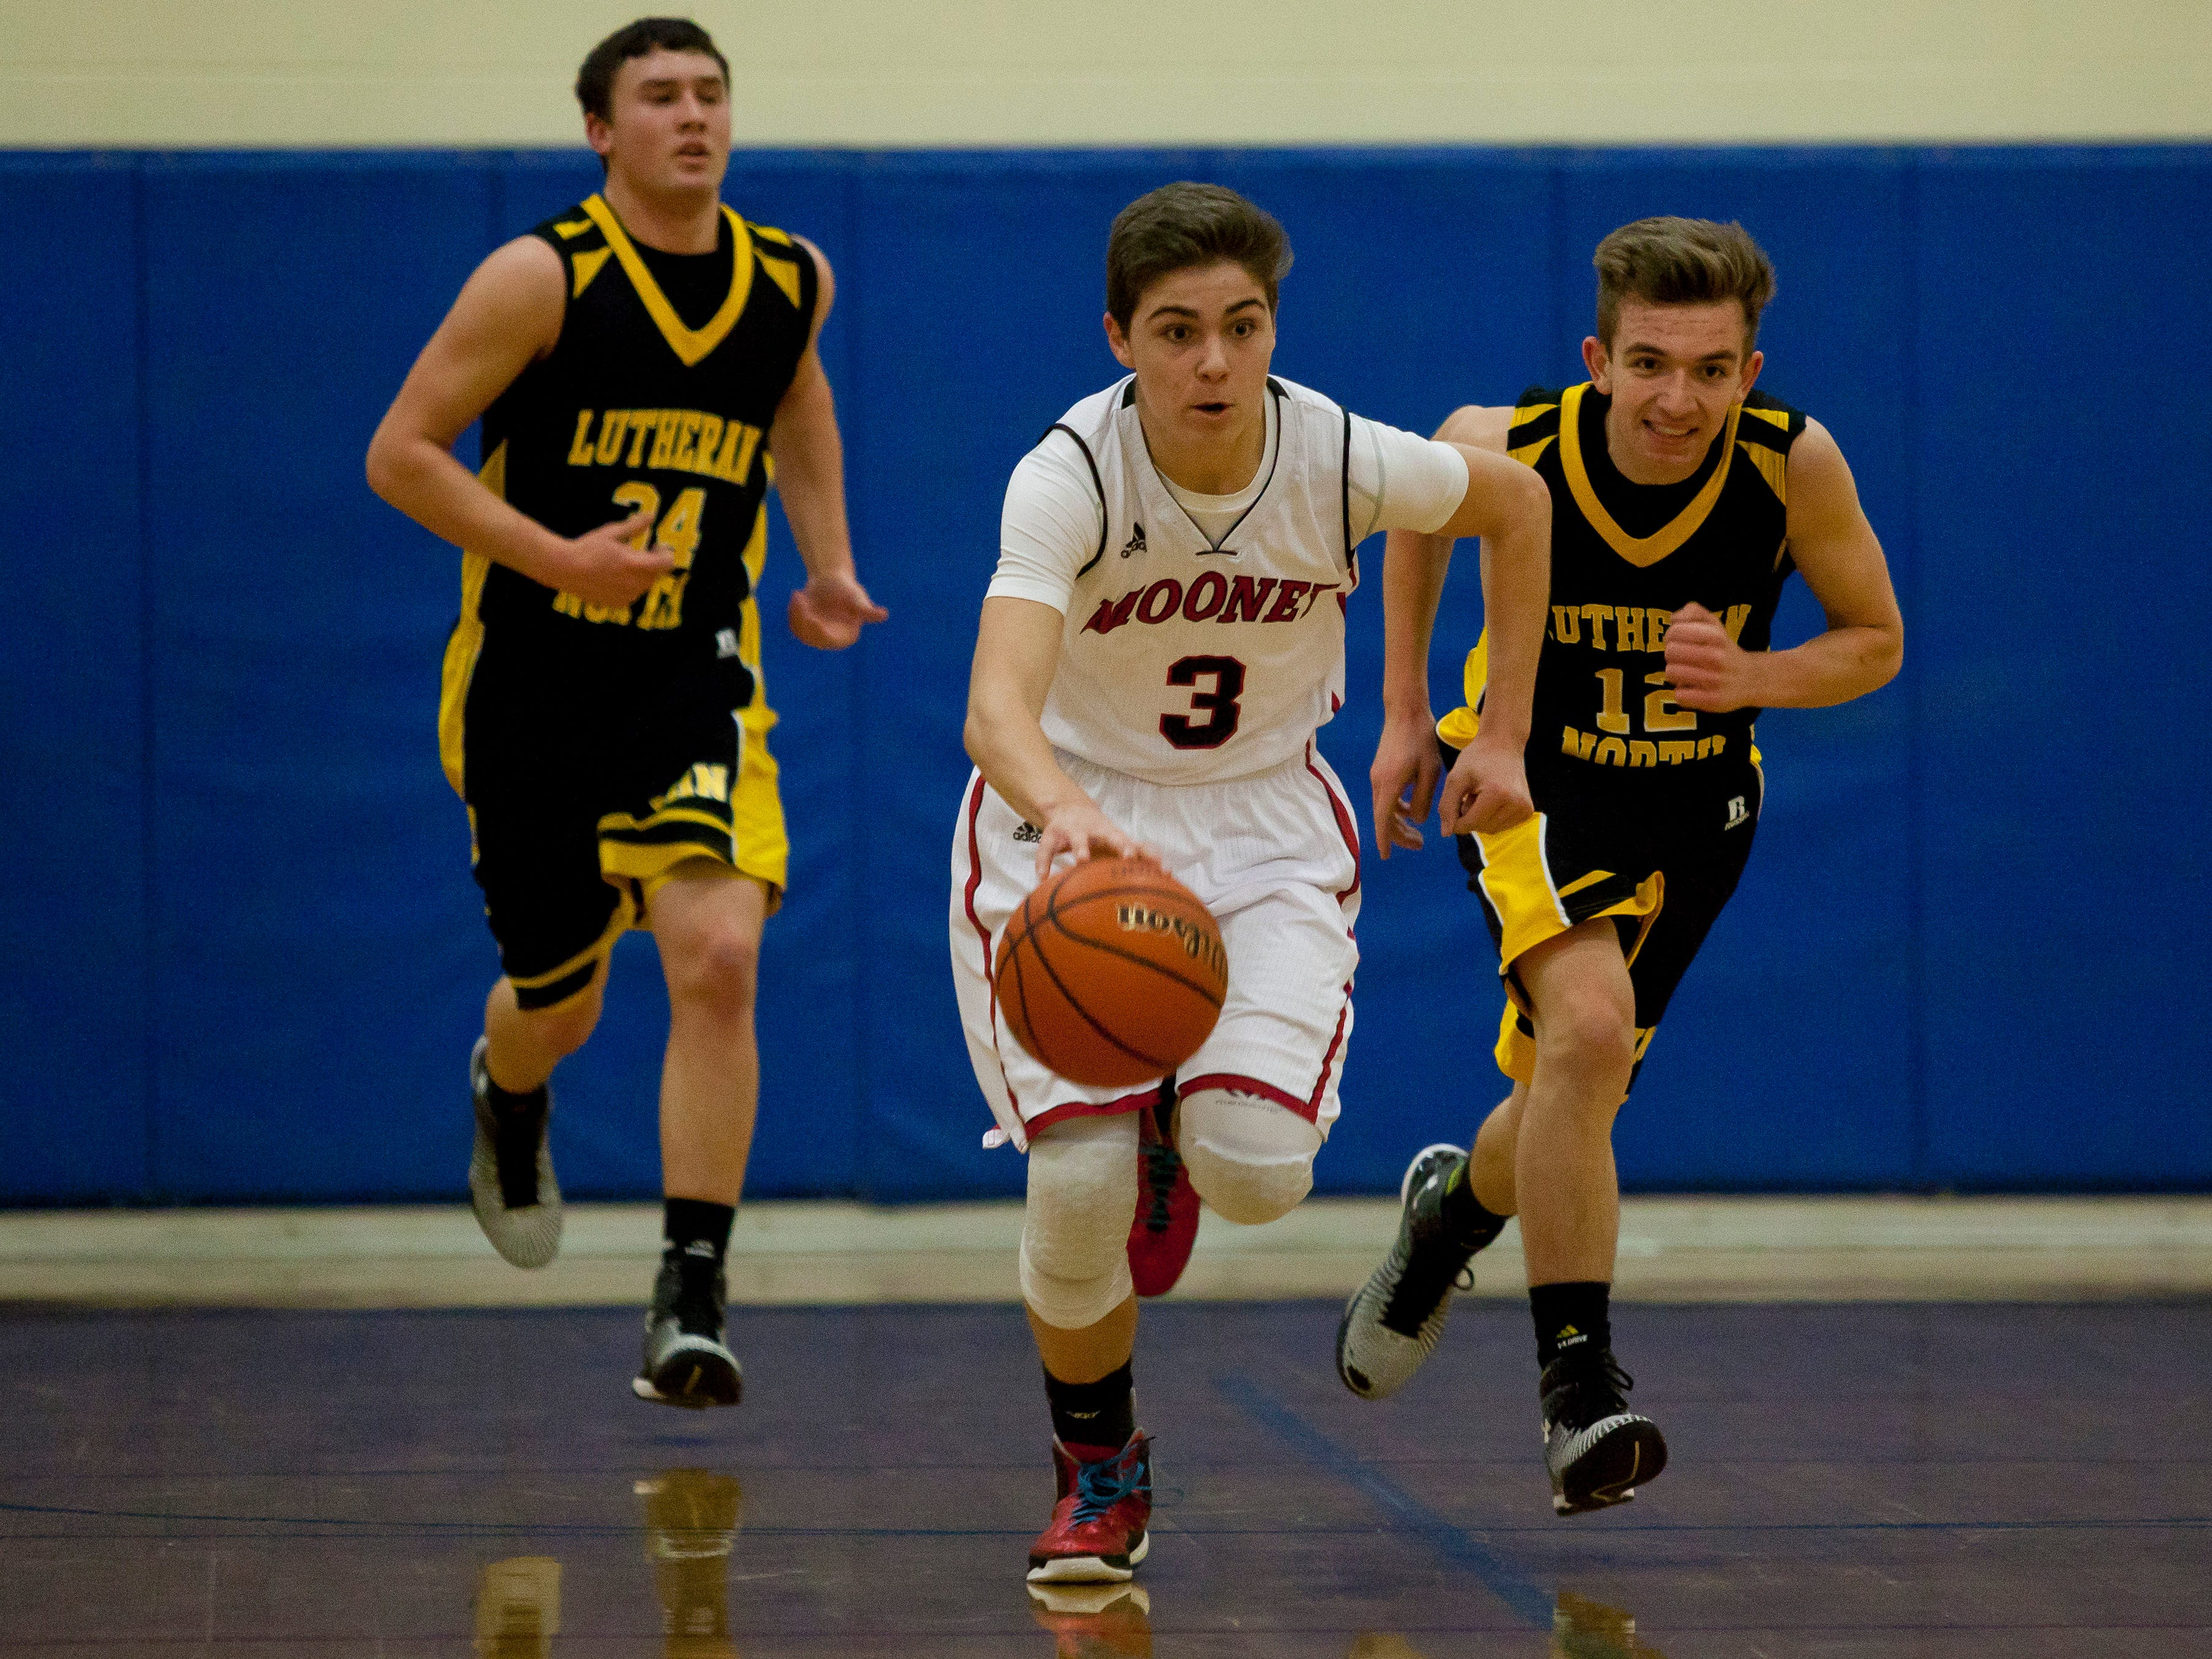 Cardinal Mooney freshman Daniel Everhart breaks away down court with the ball during a basketball game Tuesday, Feb. 17, 2015 at Cardinal Mooney High School in Marine City.